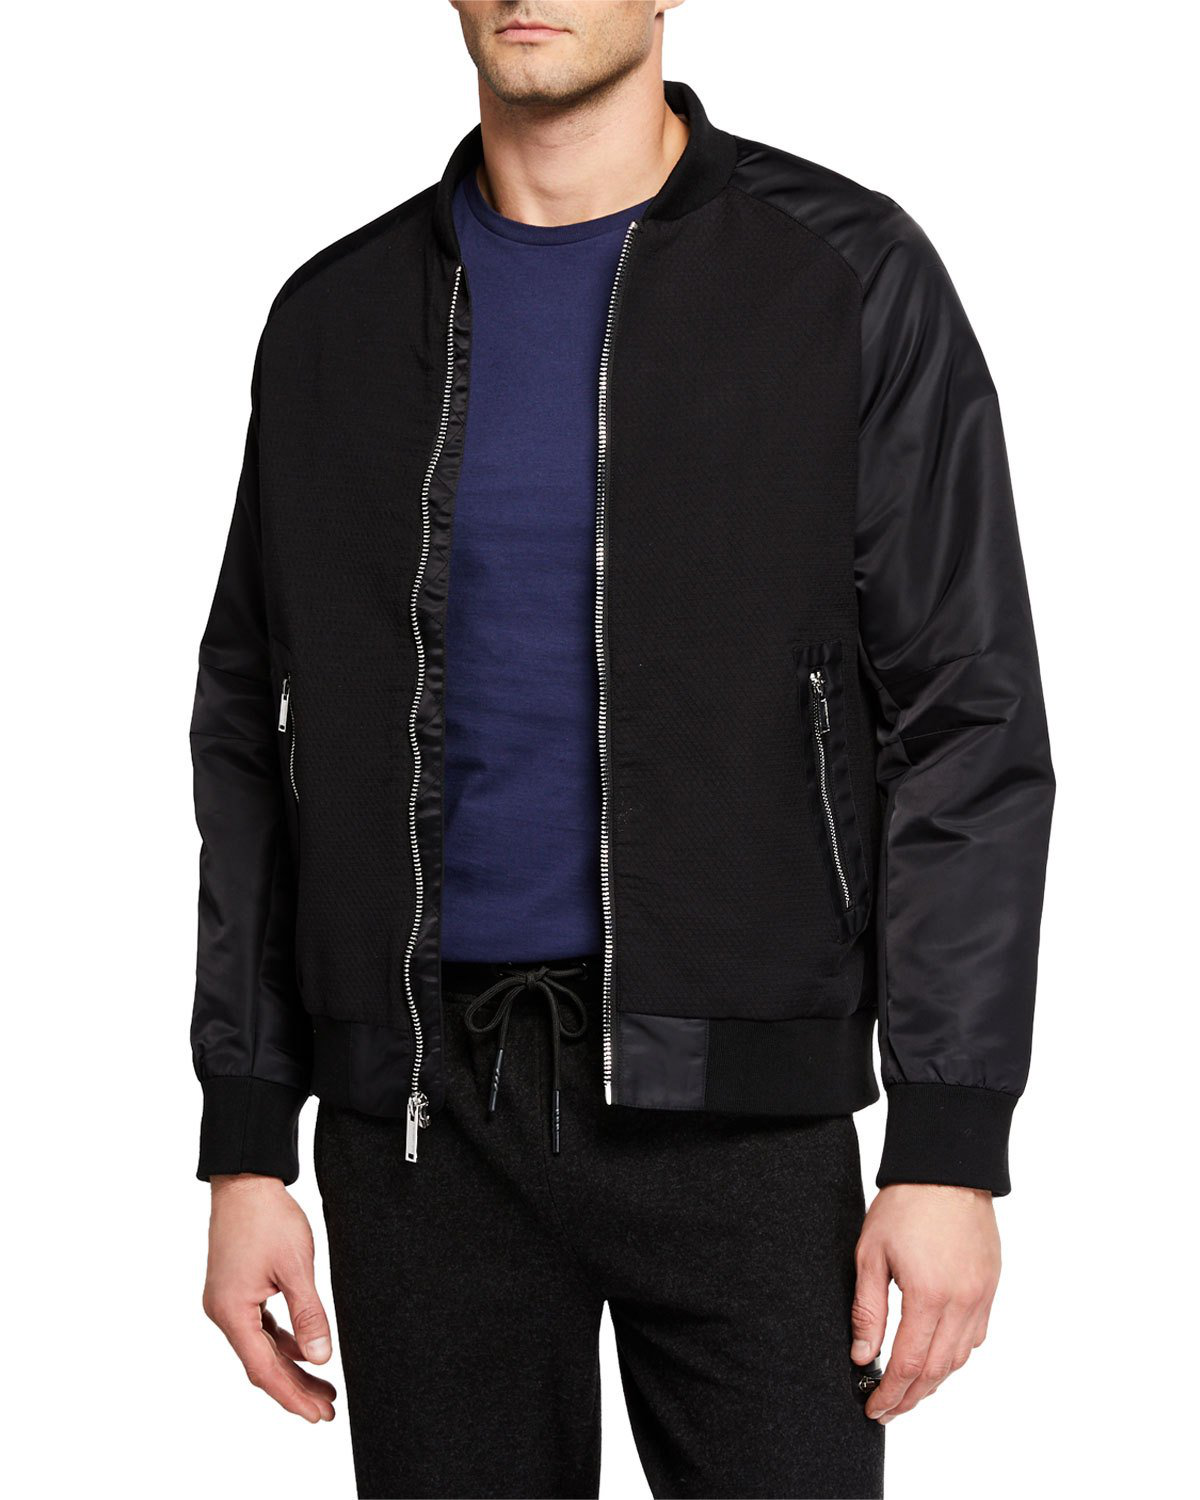 ee725a72 Karl Lagerfeld Men's Mixed-Media Bomber Jacket In Black | ModeSens